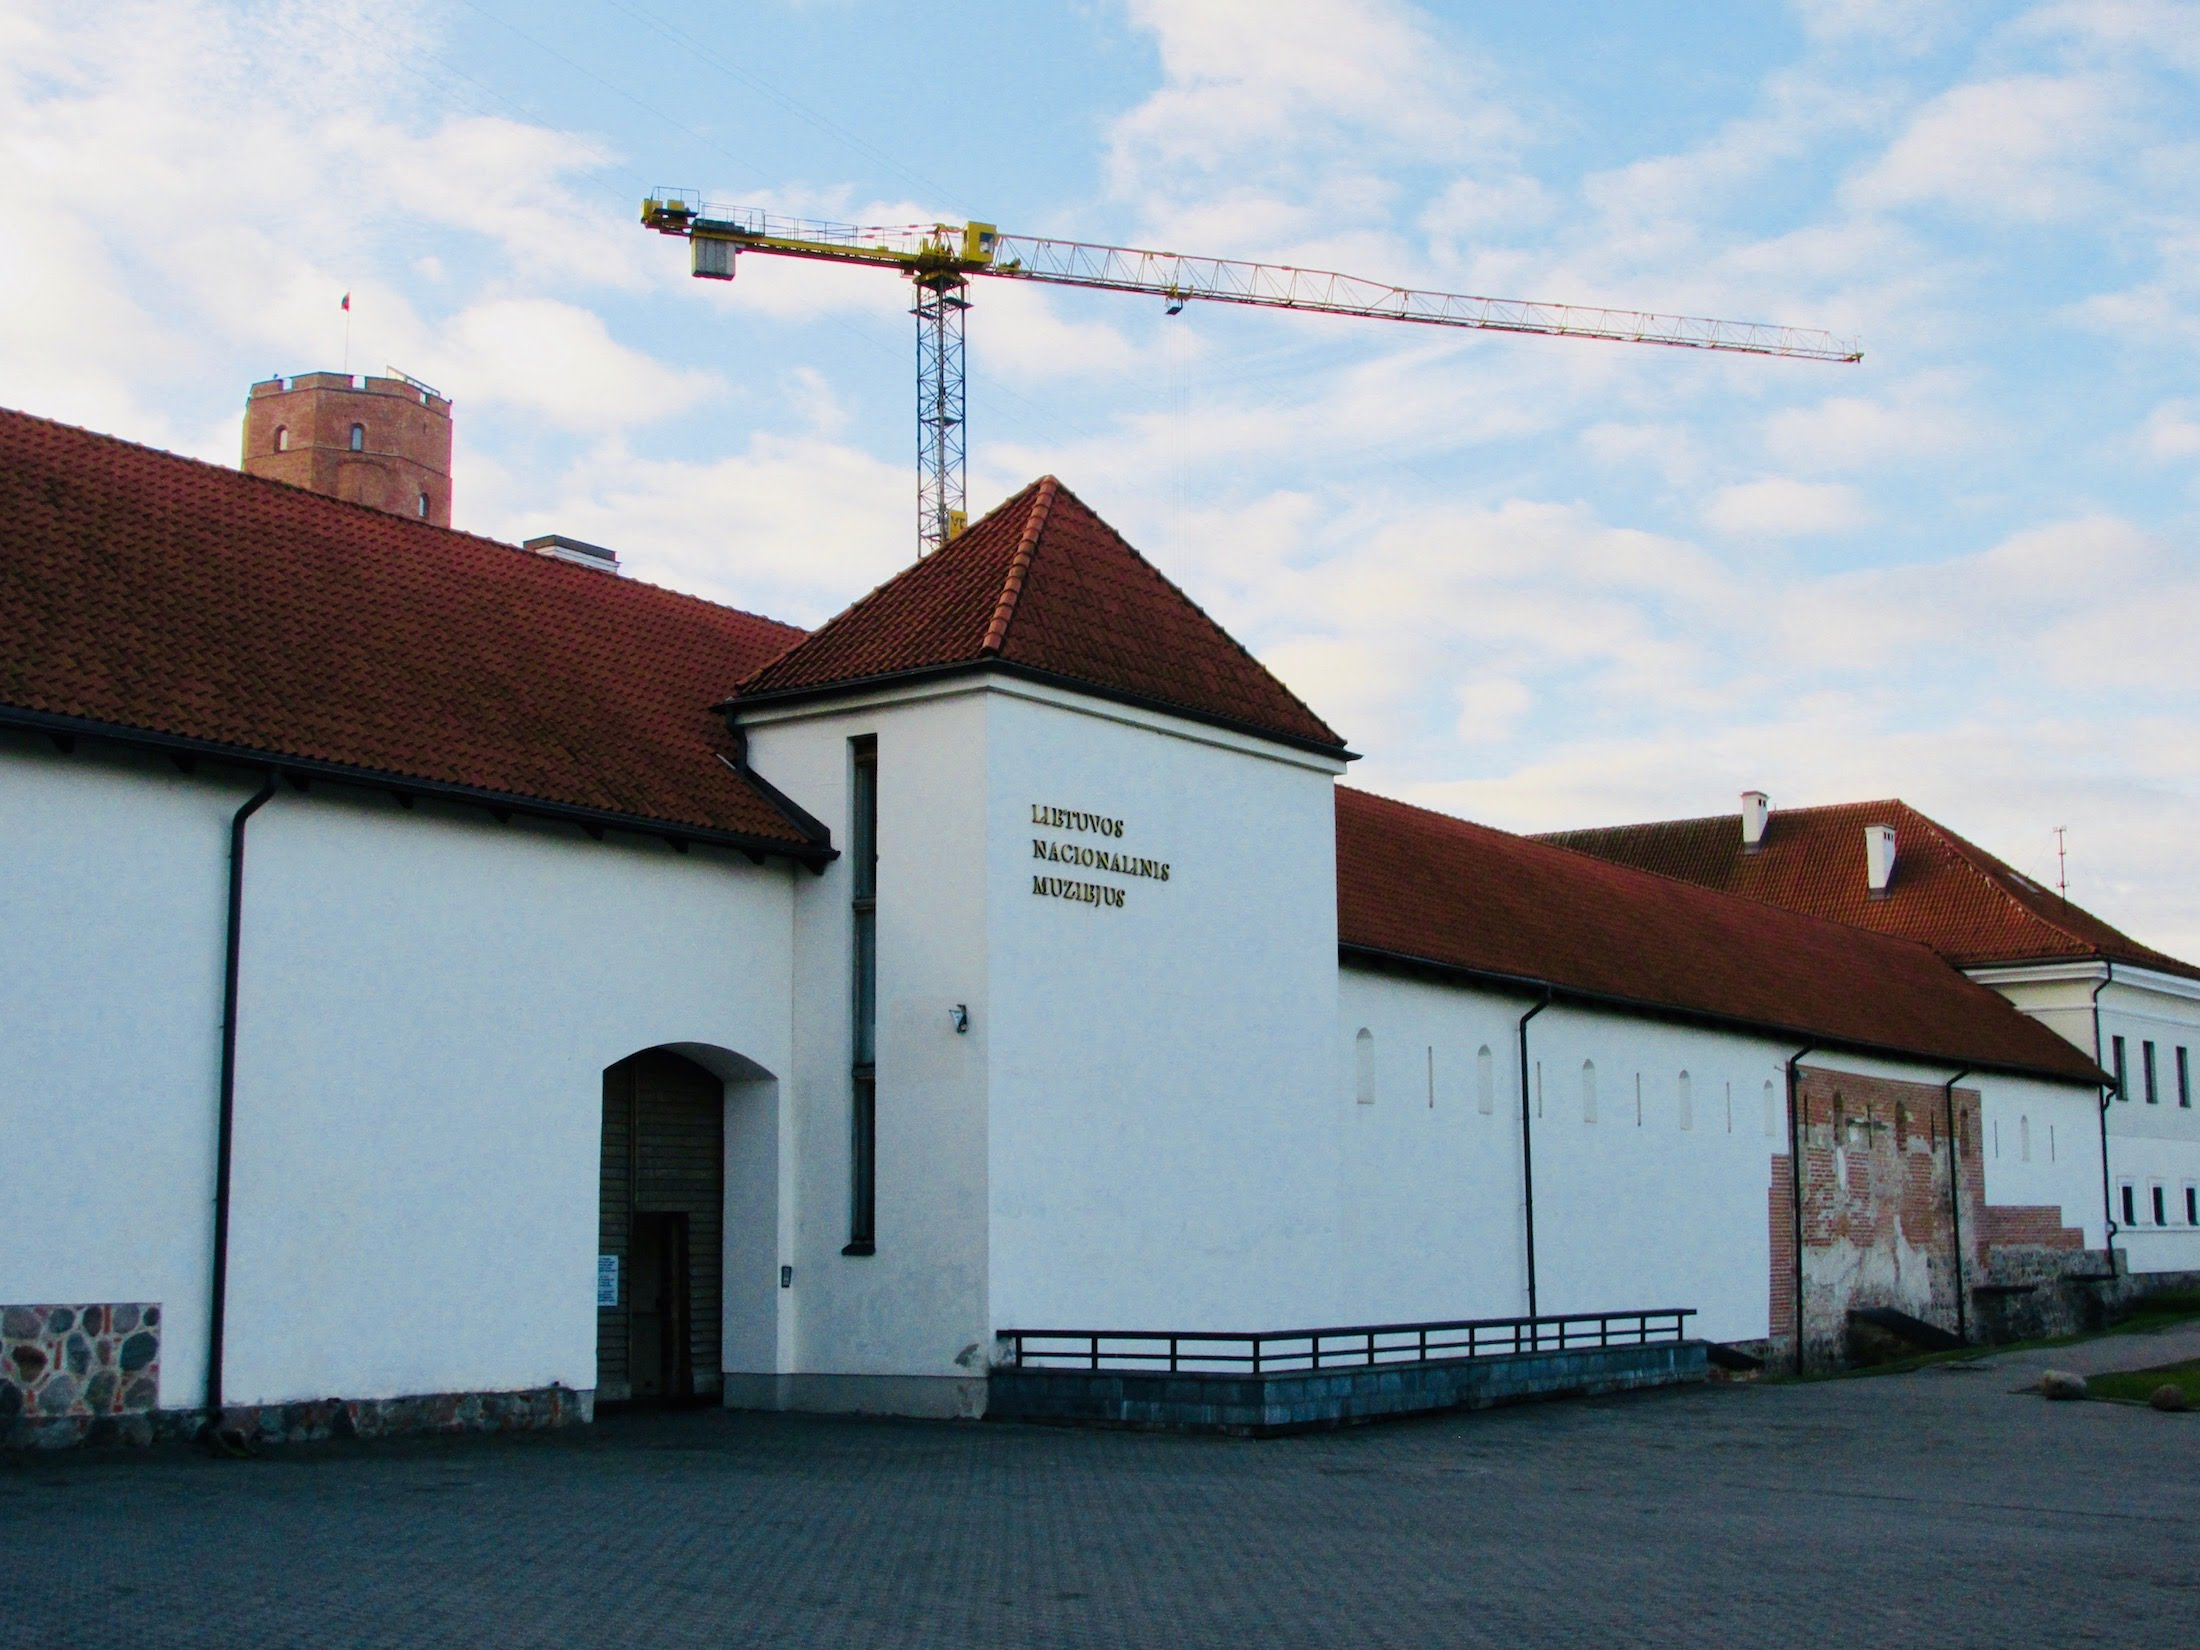 The National Museum of Lithuania